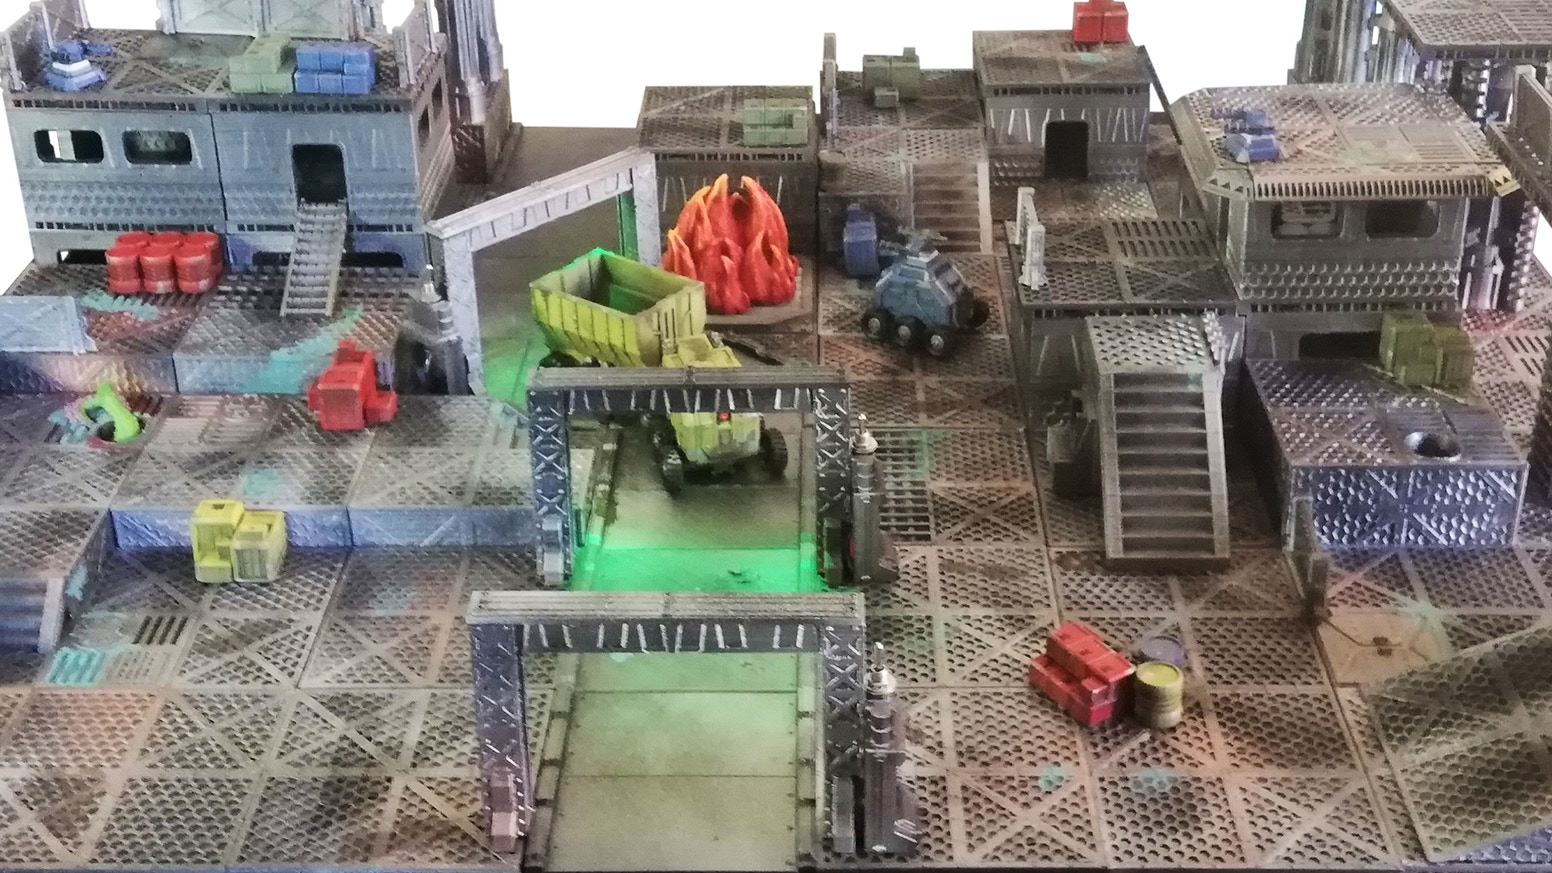 3D Printable SciFi terrain for RPG & Wargame, by Eskice Miniature. High detailed & OpenLOCK & LEDs compatible.